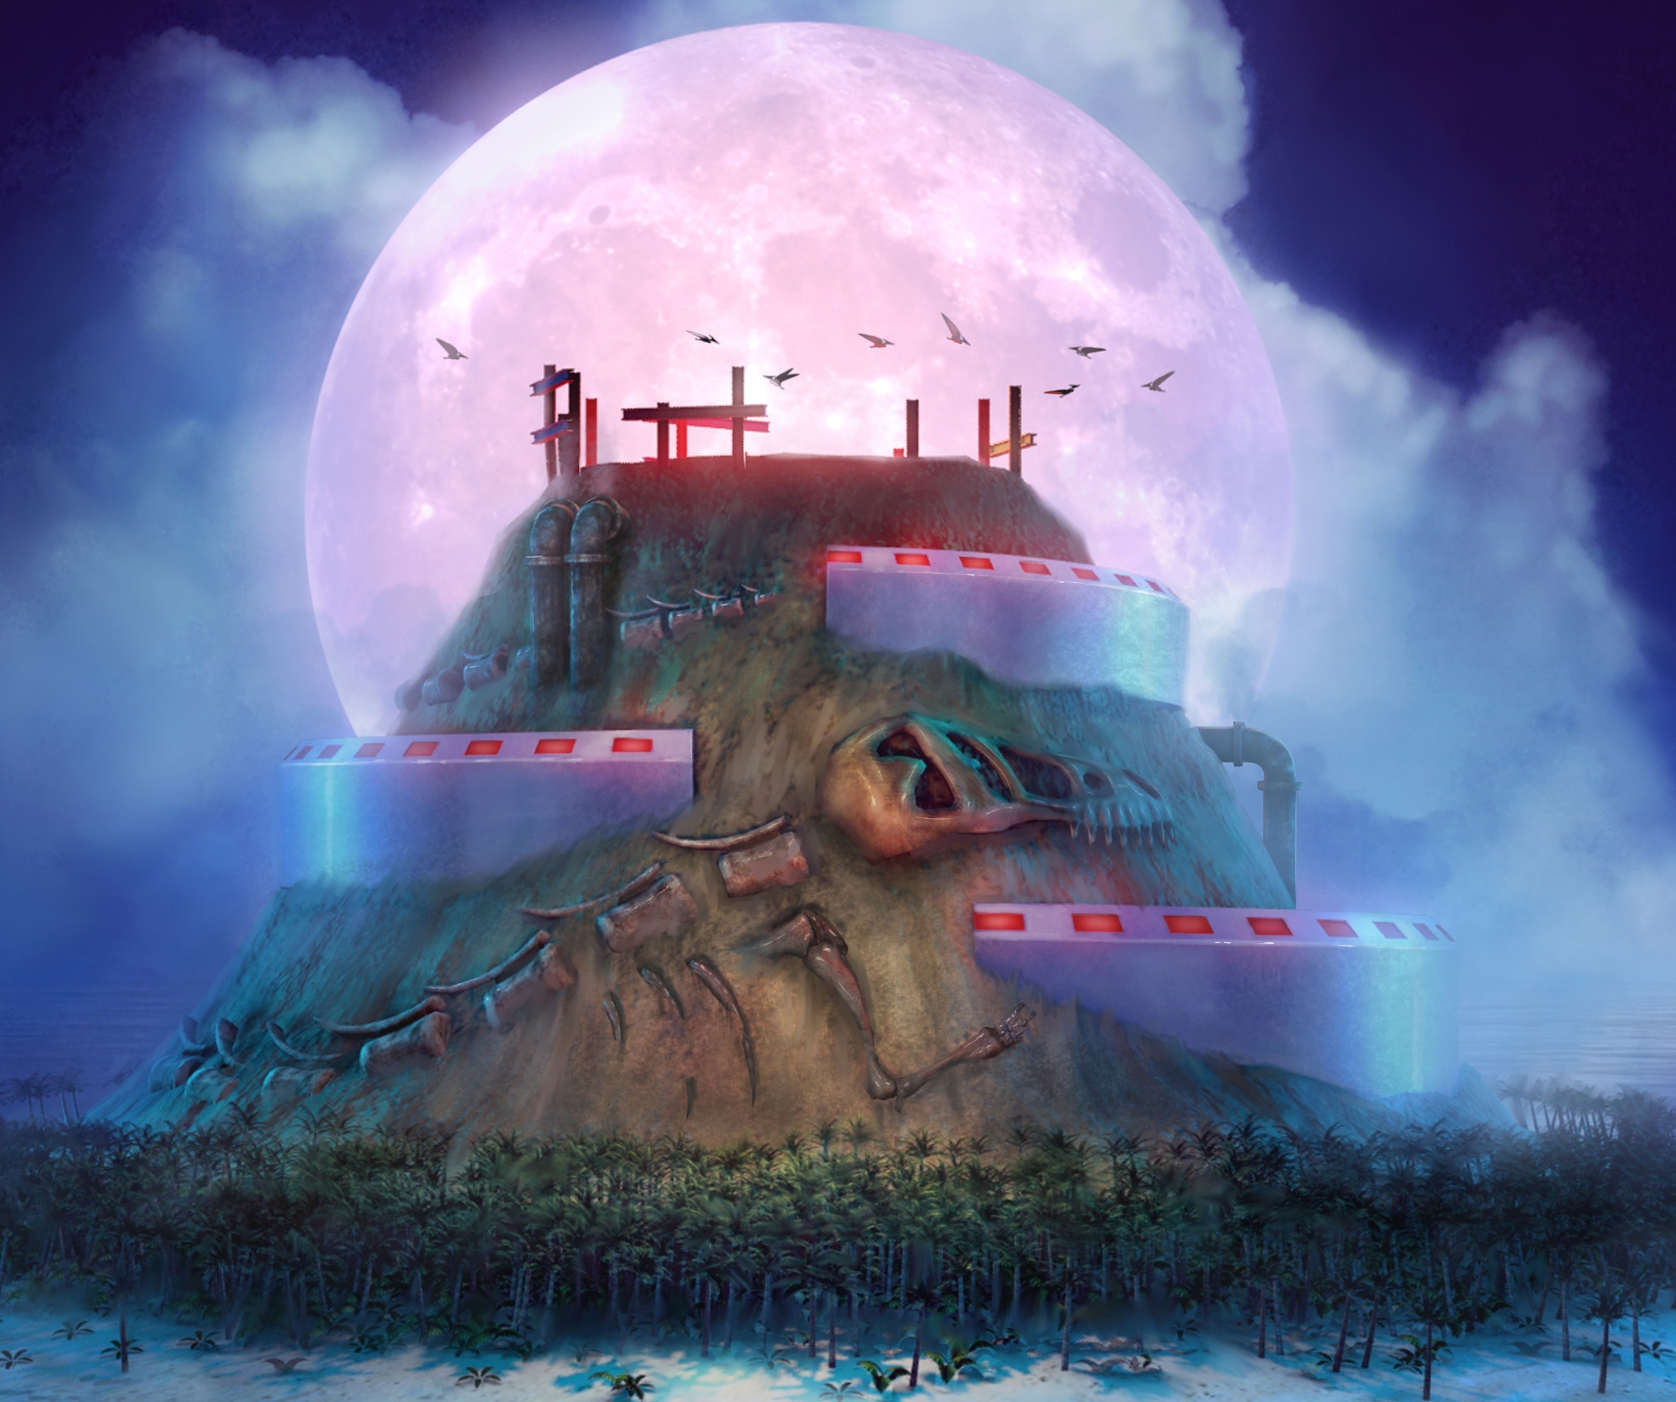 Home base of Monsterface Industries, Dino-skeleton Island, as envisioned by  infEhnite Design